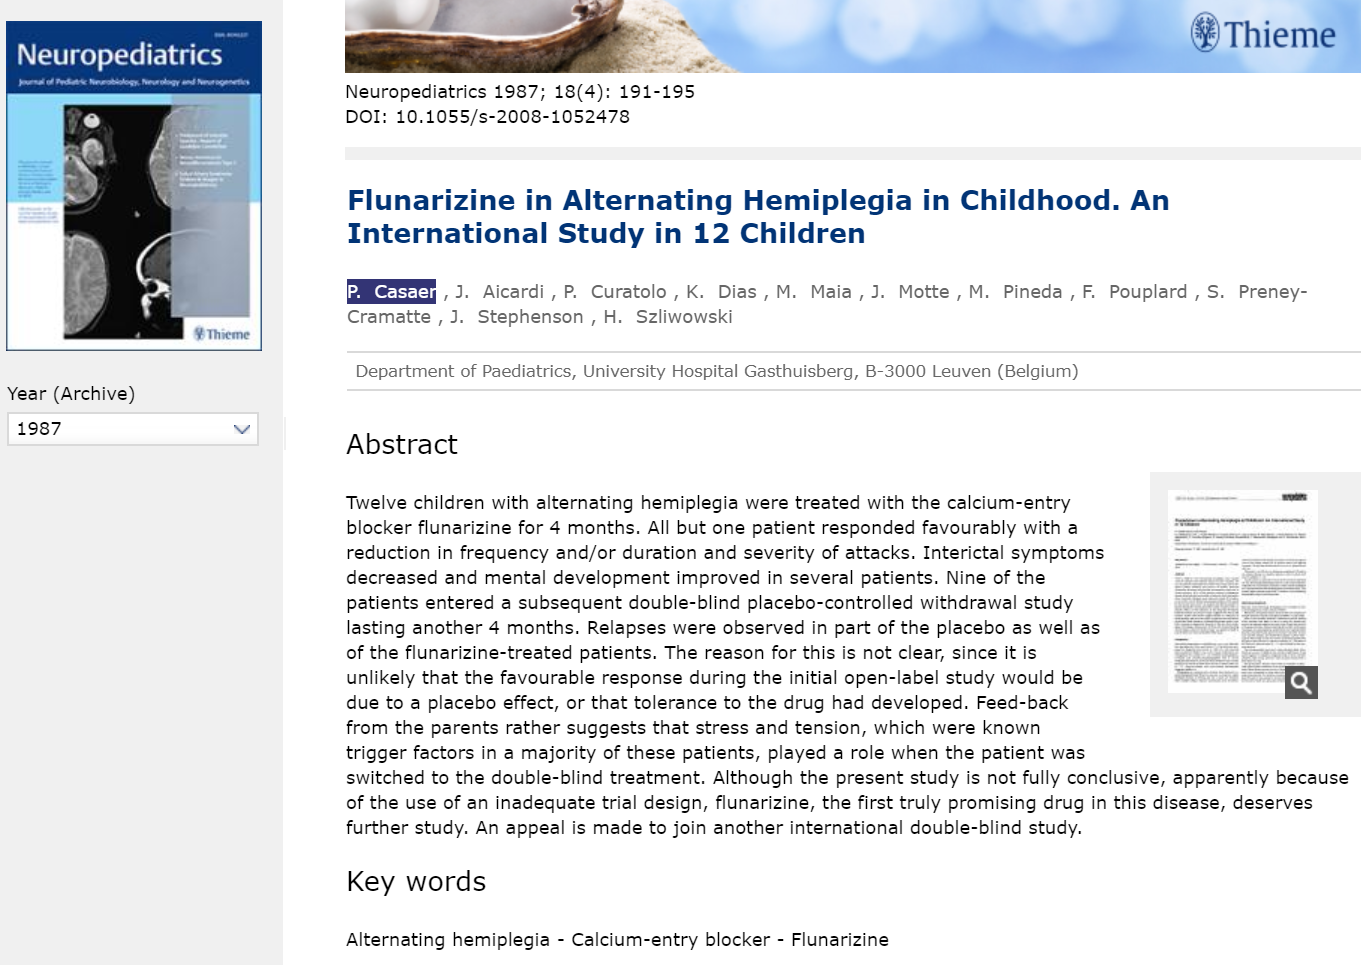 Article about the Study with Flunarizine in Alternating Hemiplegia of Childhood (Neuropediatrics, 1987)